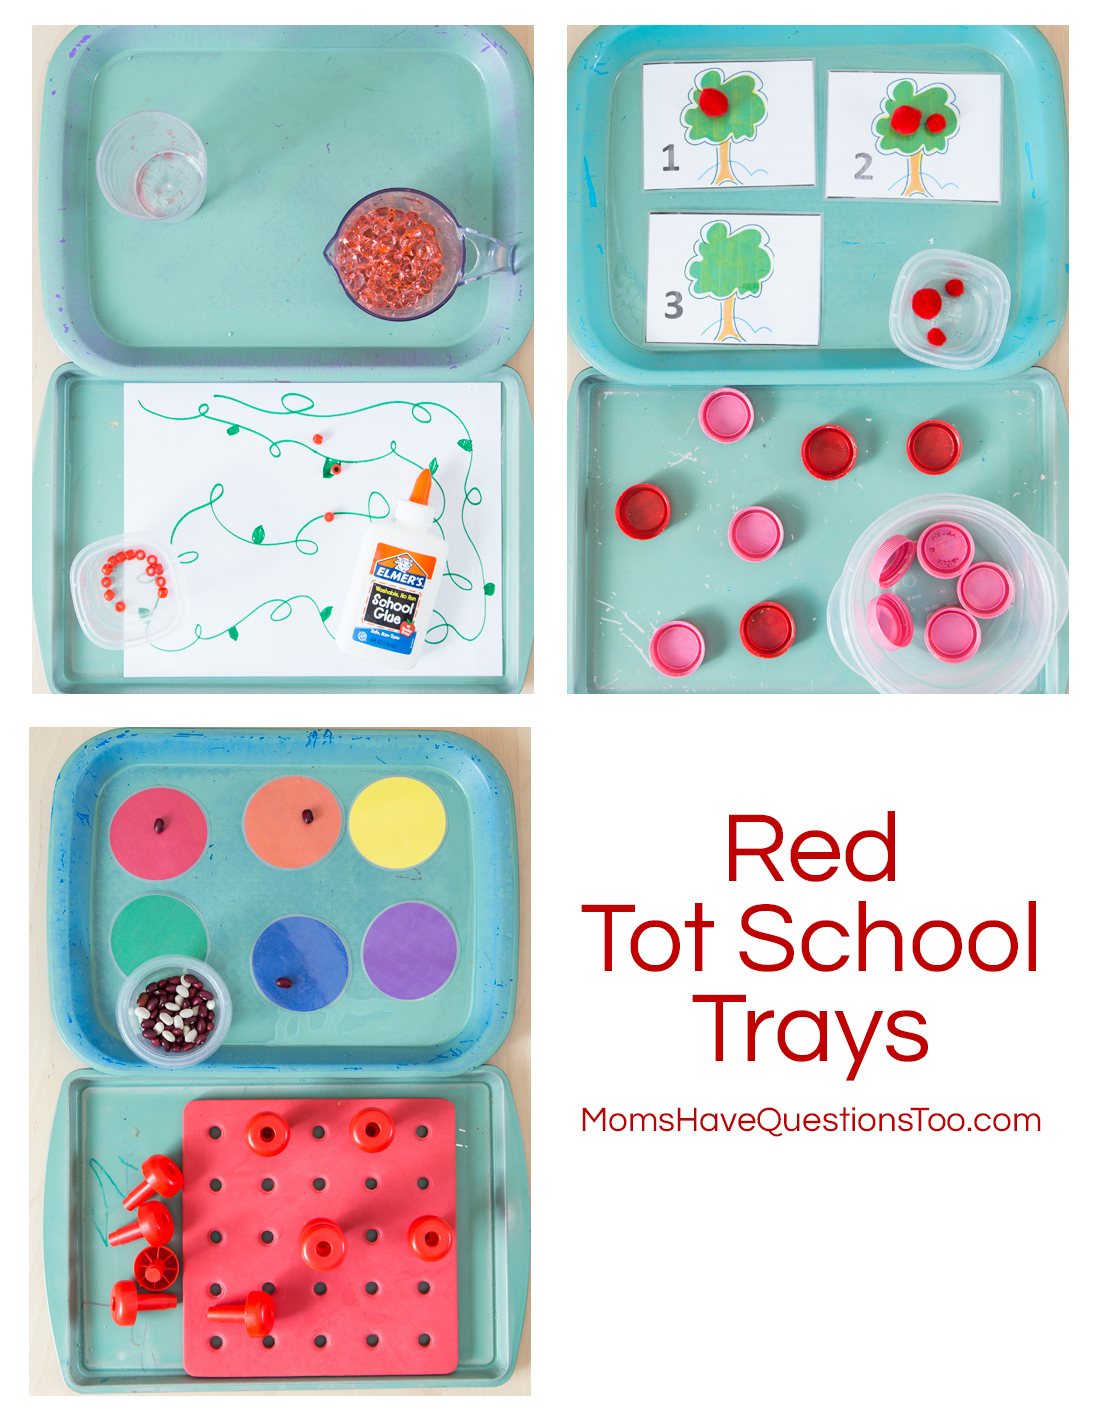 Red Tot School Trays - Moms Have Questions Too